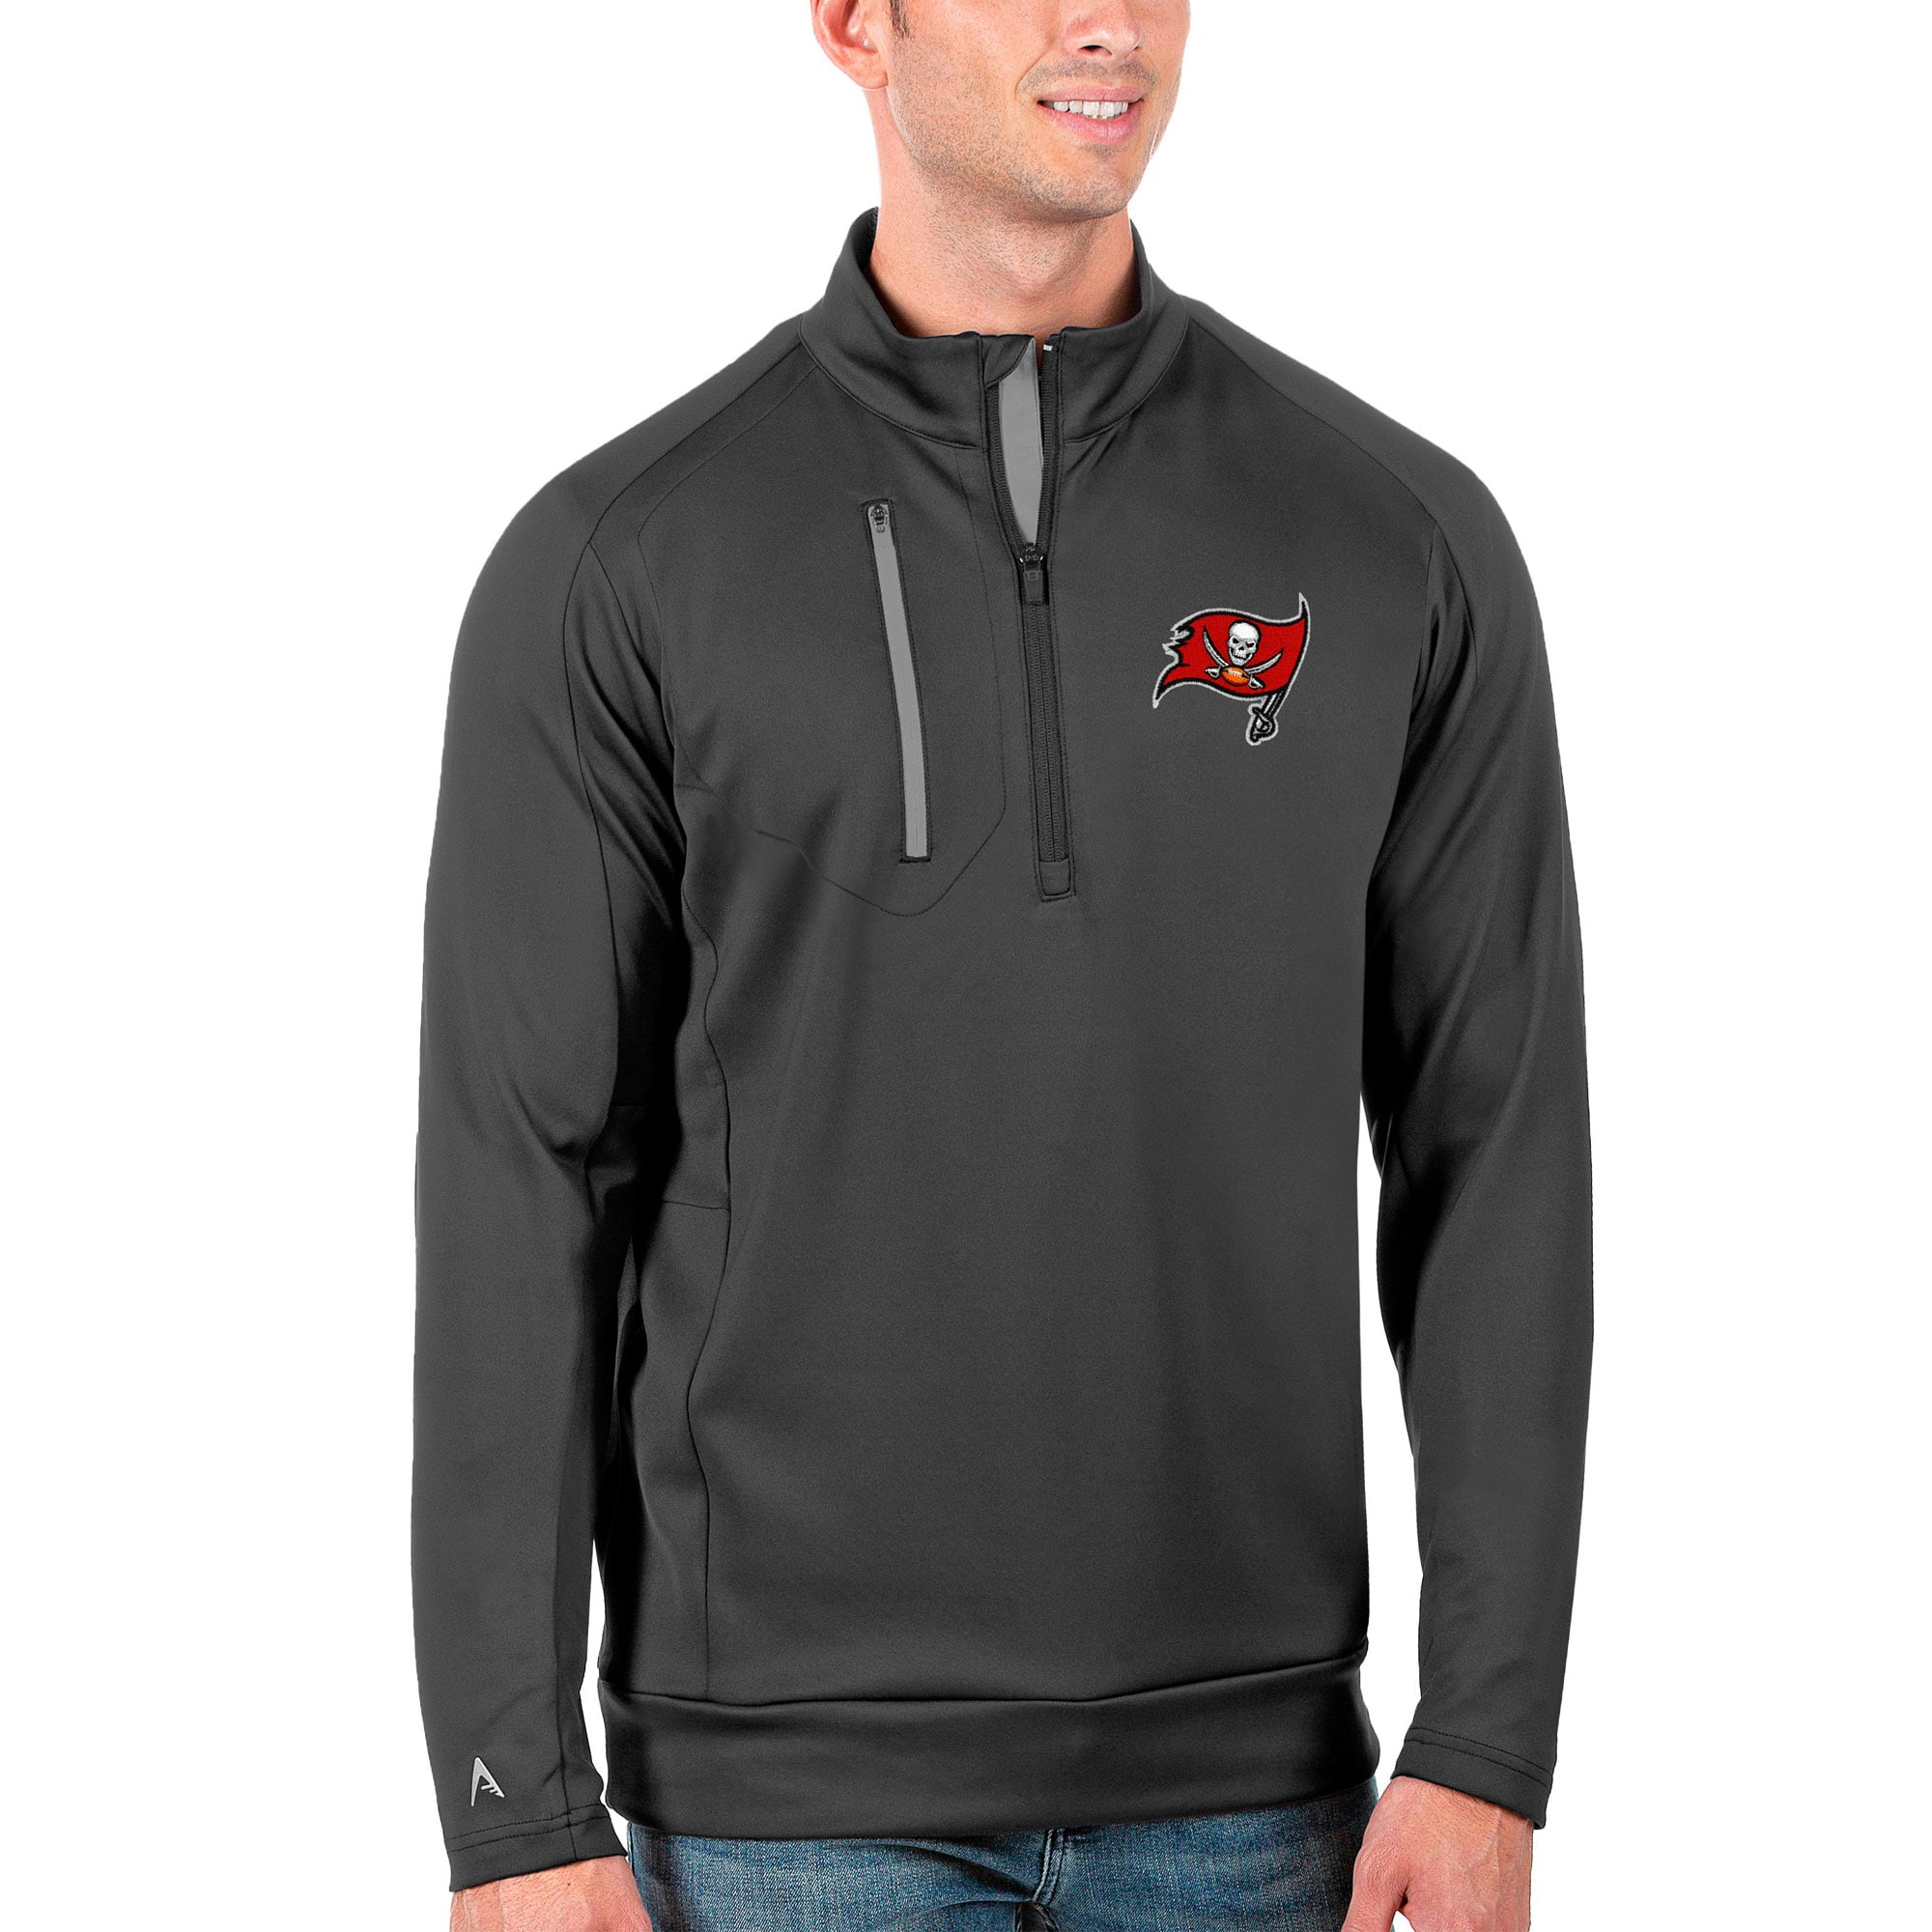 Tampa Bay Buccaneers Antigua Generation Quarter-Zip Pullover Jacket - Charcoal/Silver